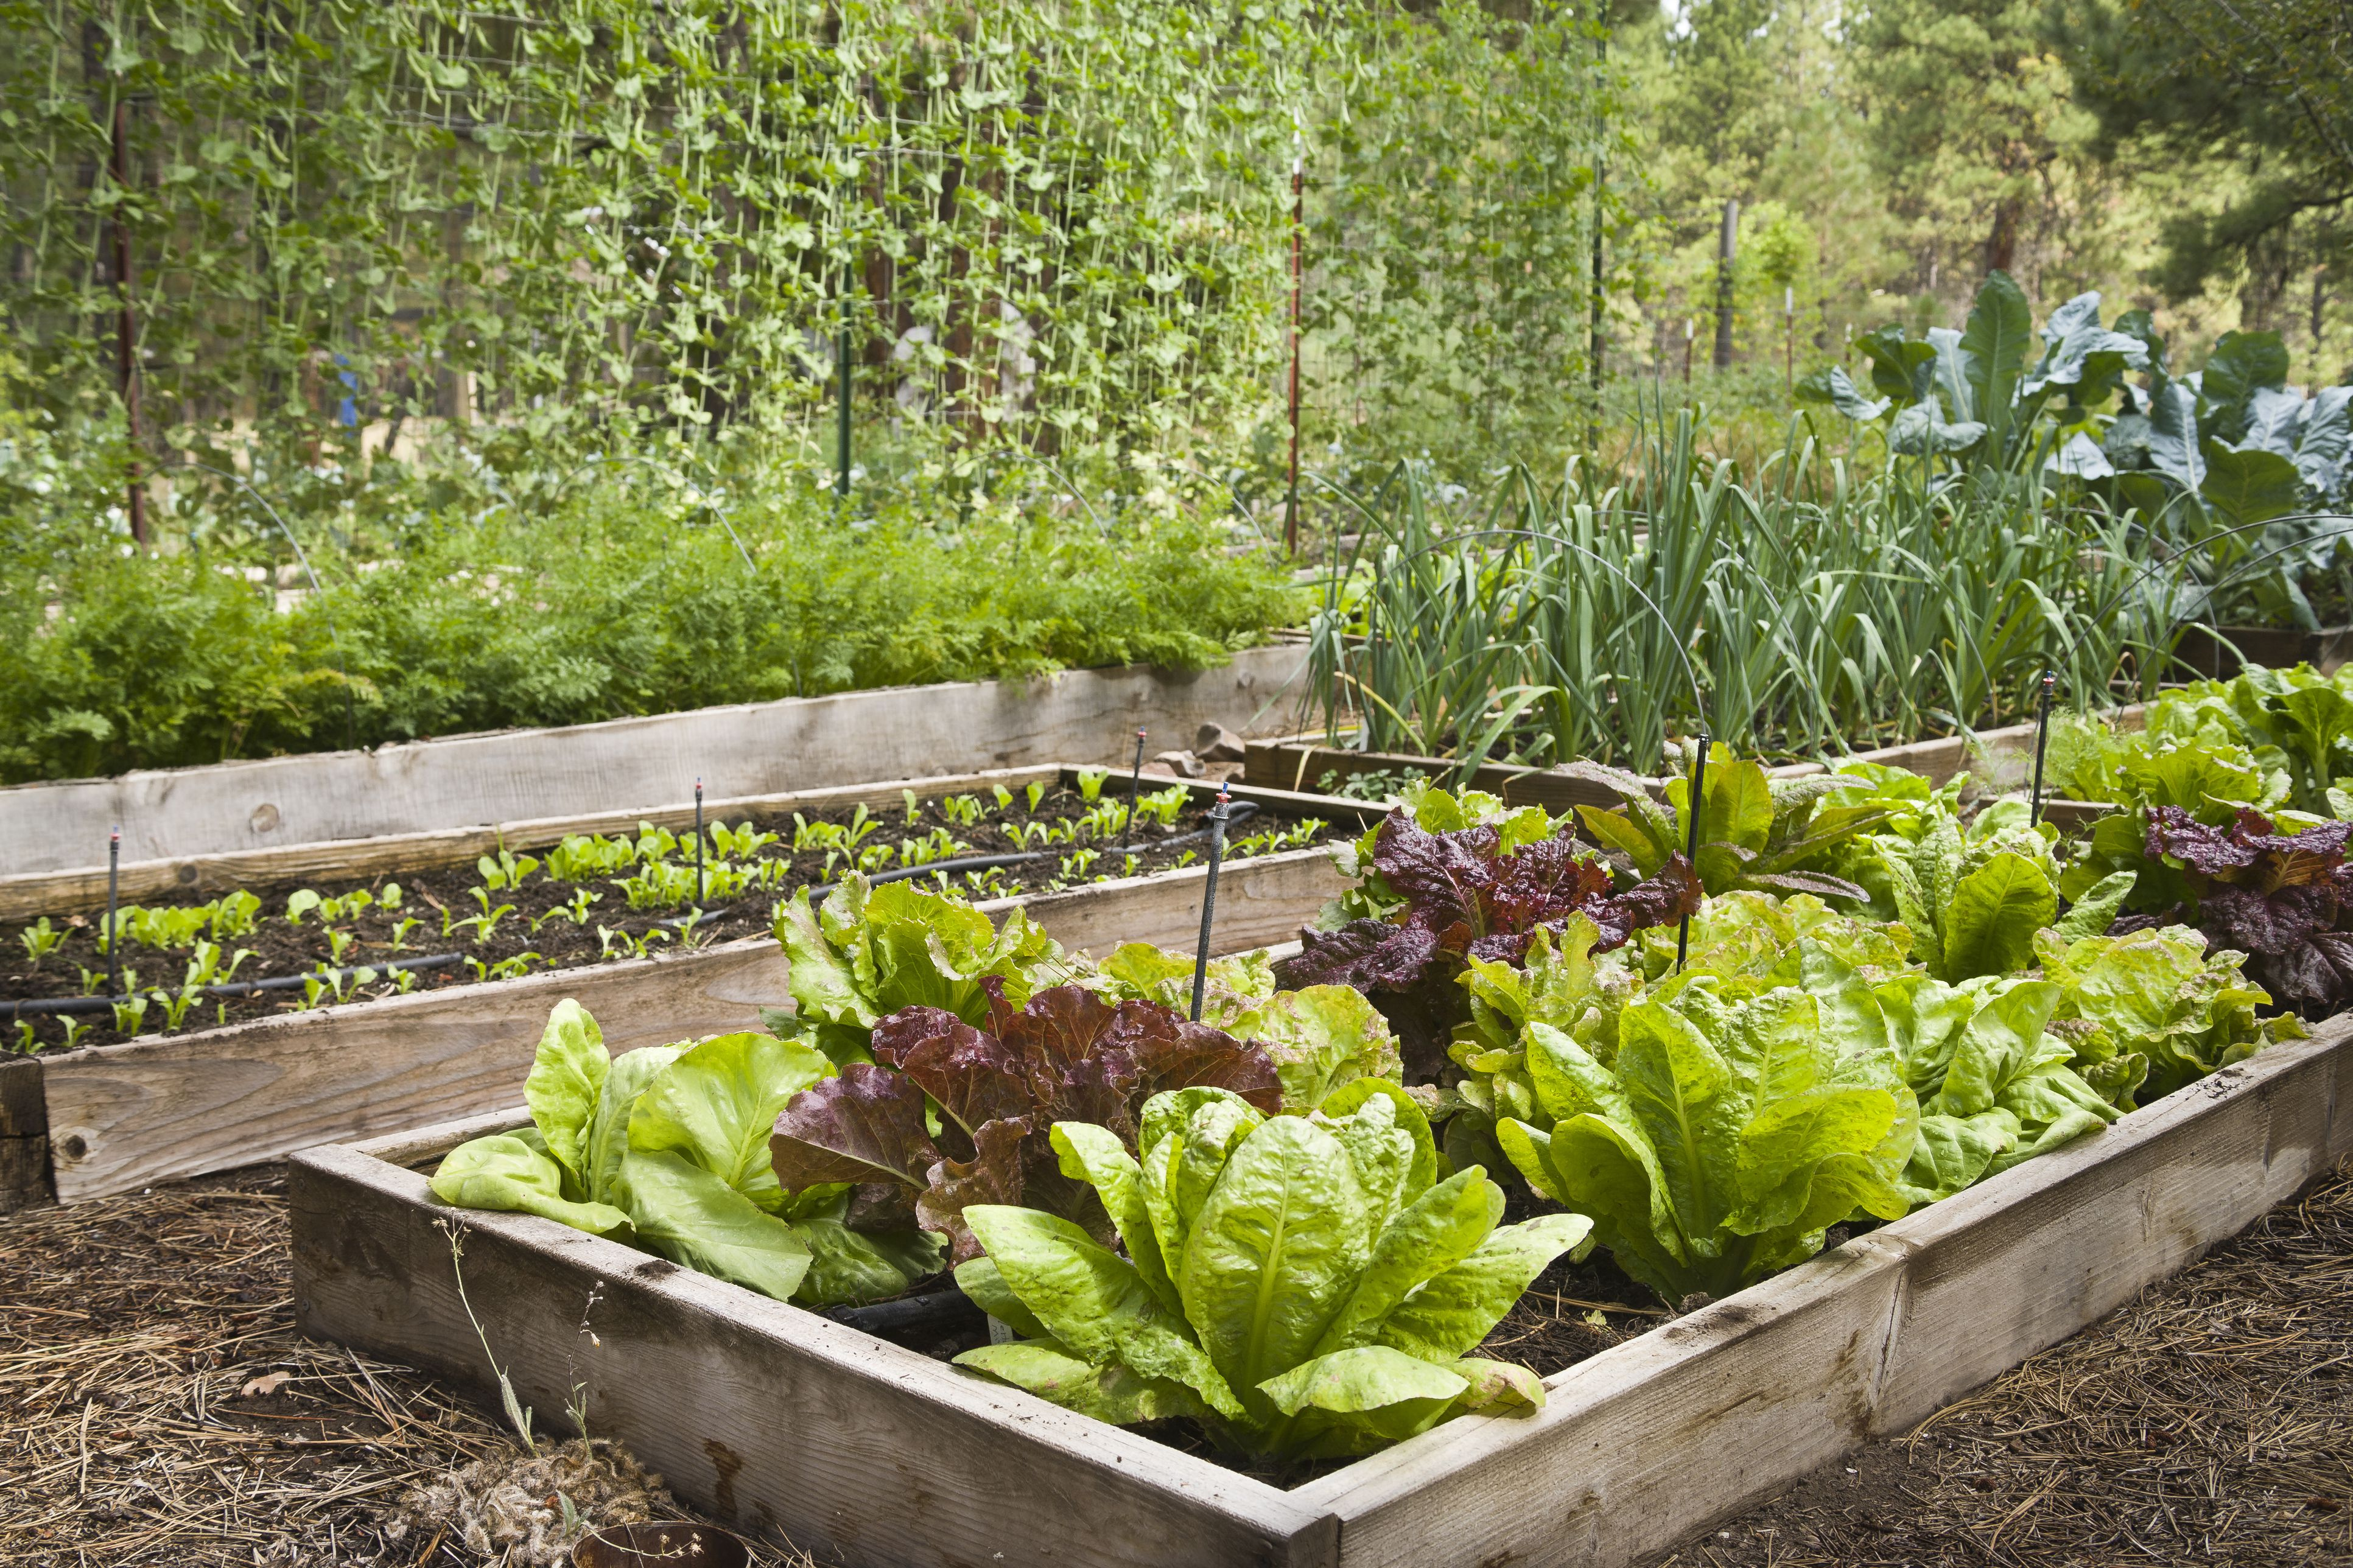 Direct Sowing Vegetables In The Garden